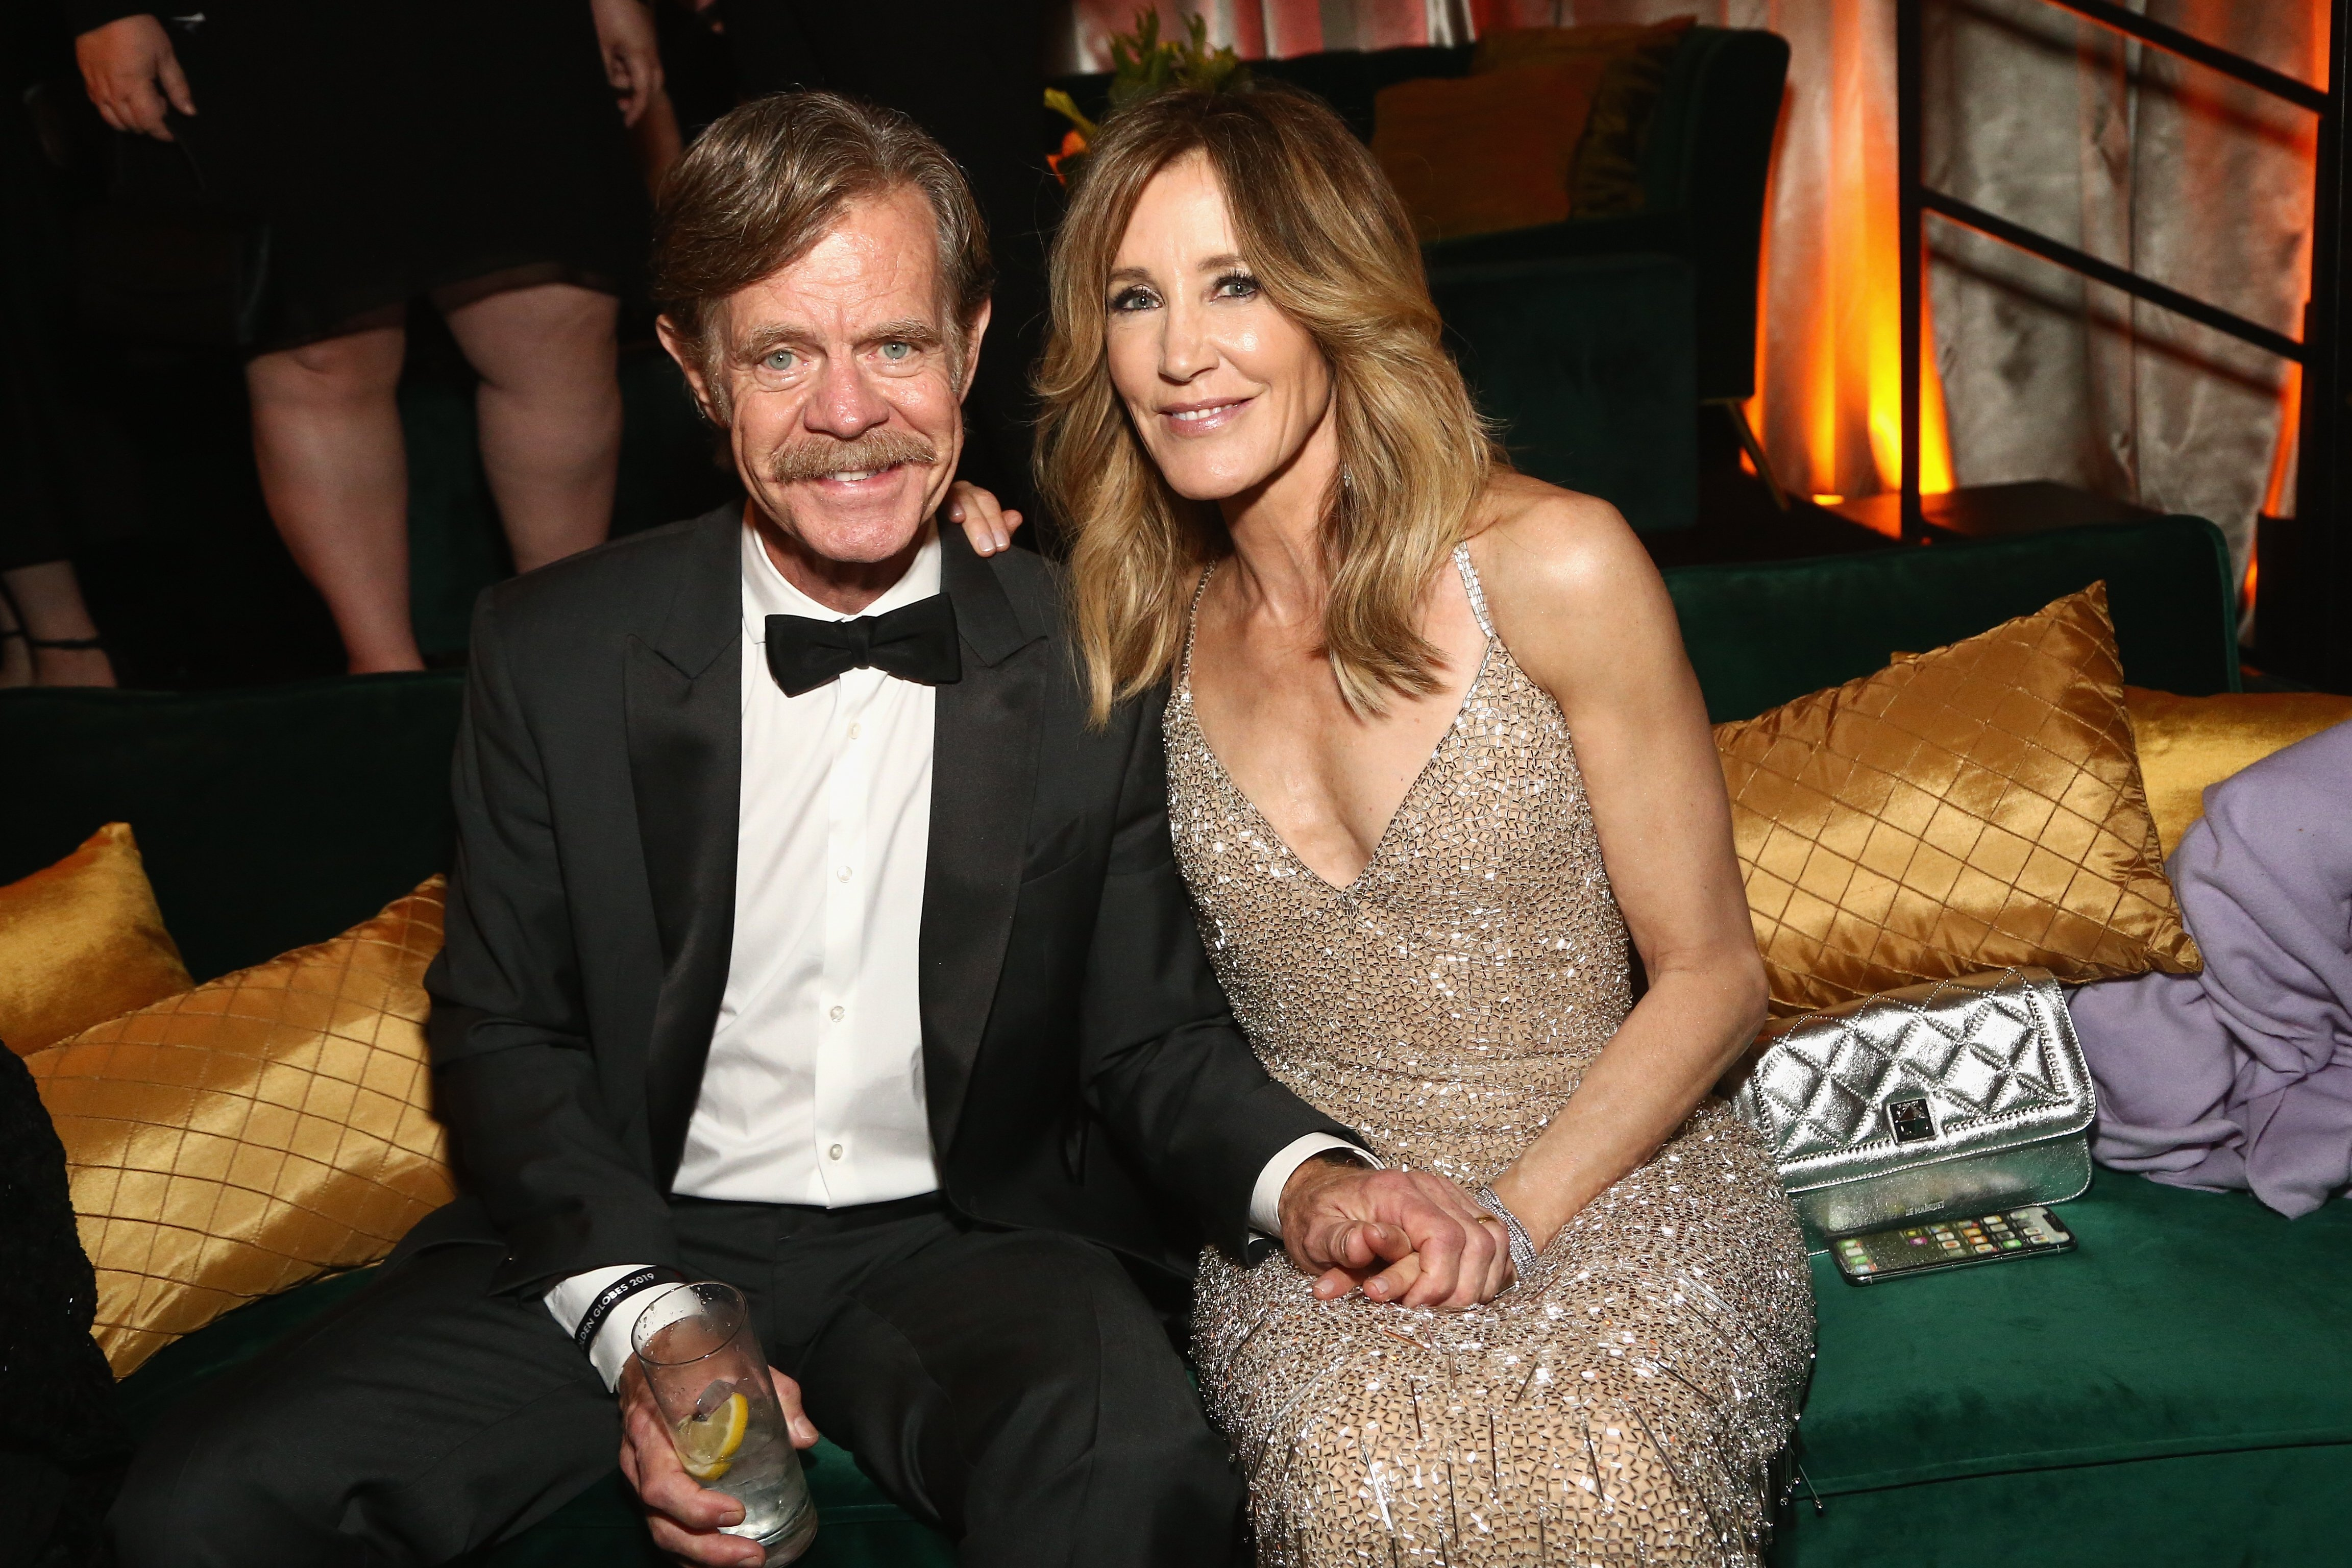 Felicity Huffman and William H. Macy at the Netflix 2019 Golden Globes After Party on January 6, 2019 | Photo: GettyImages